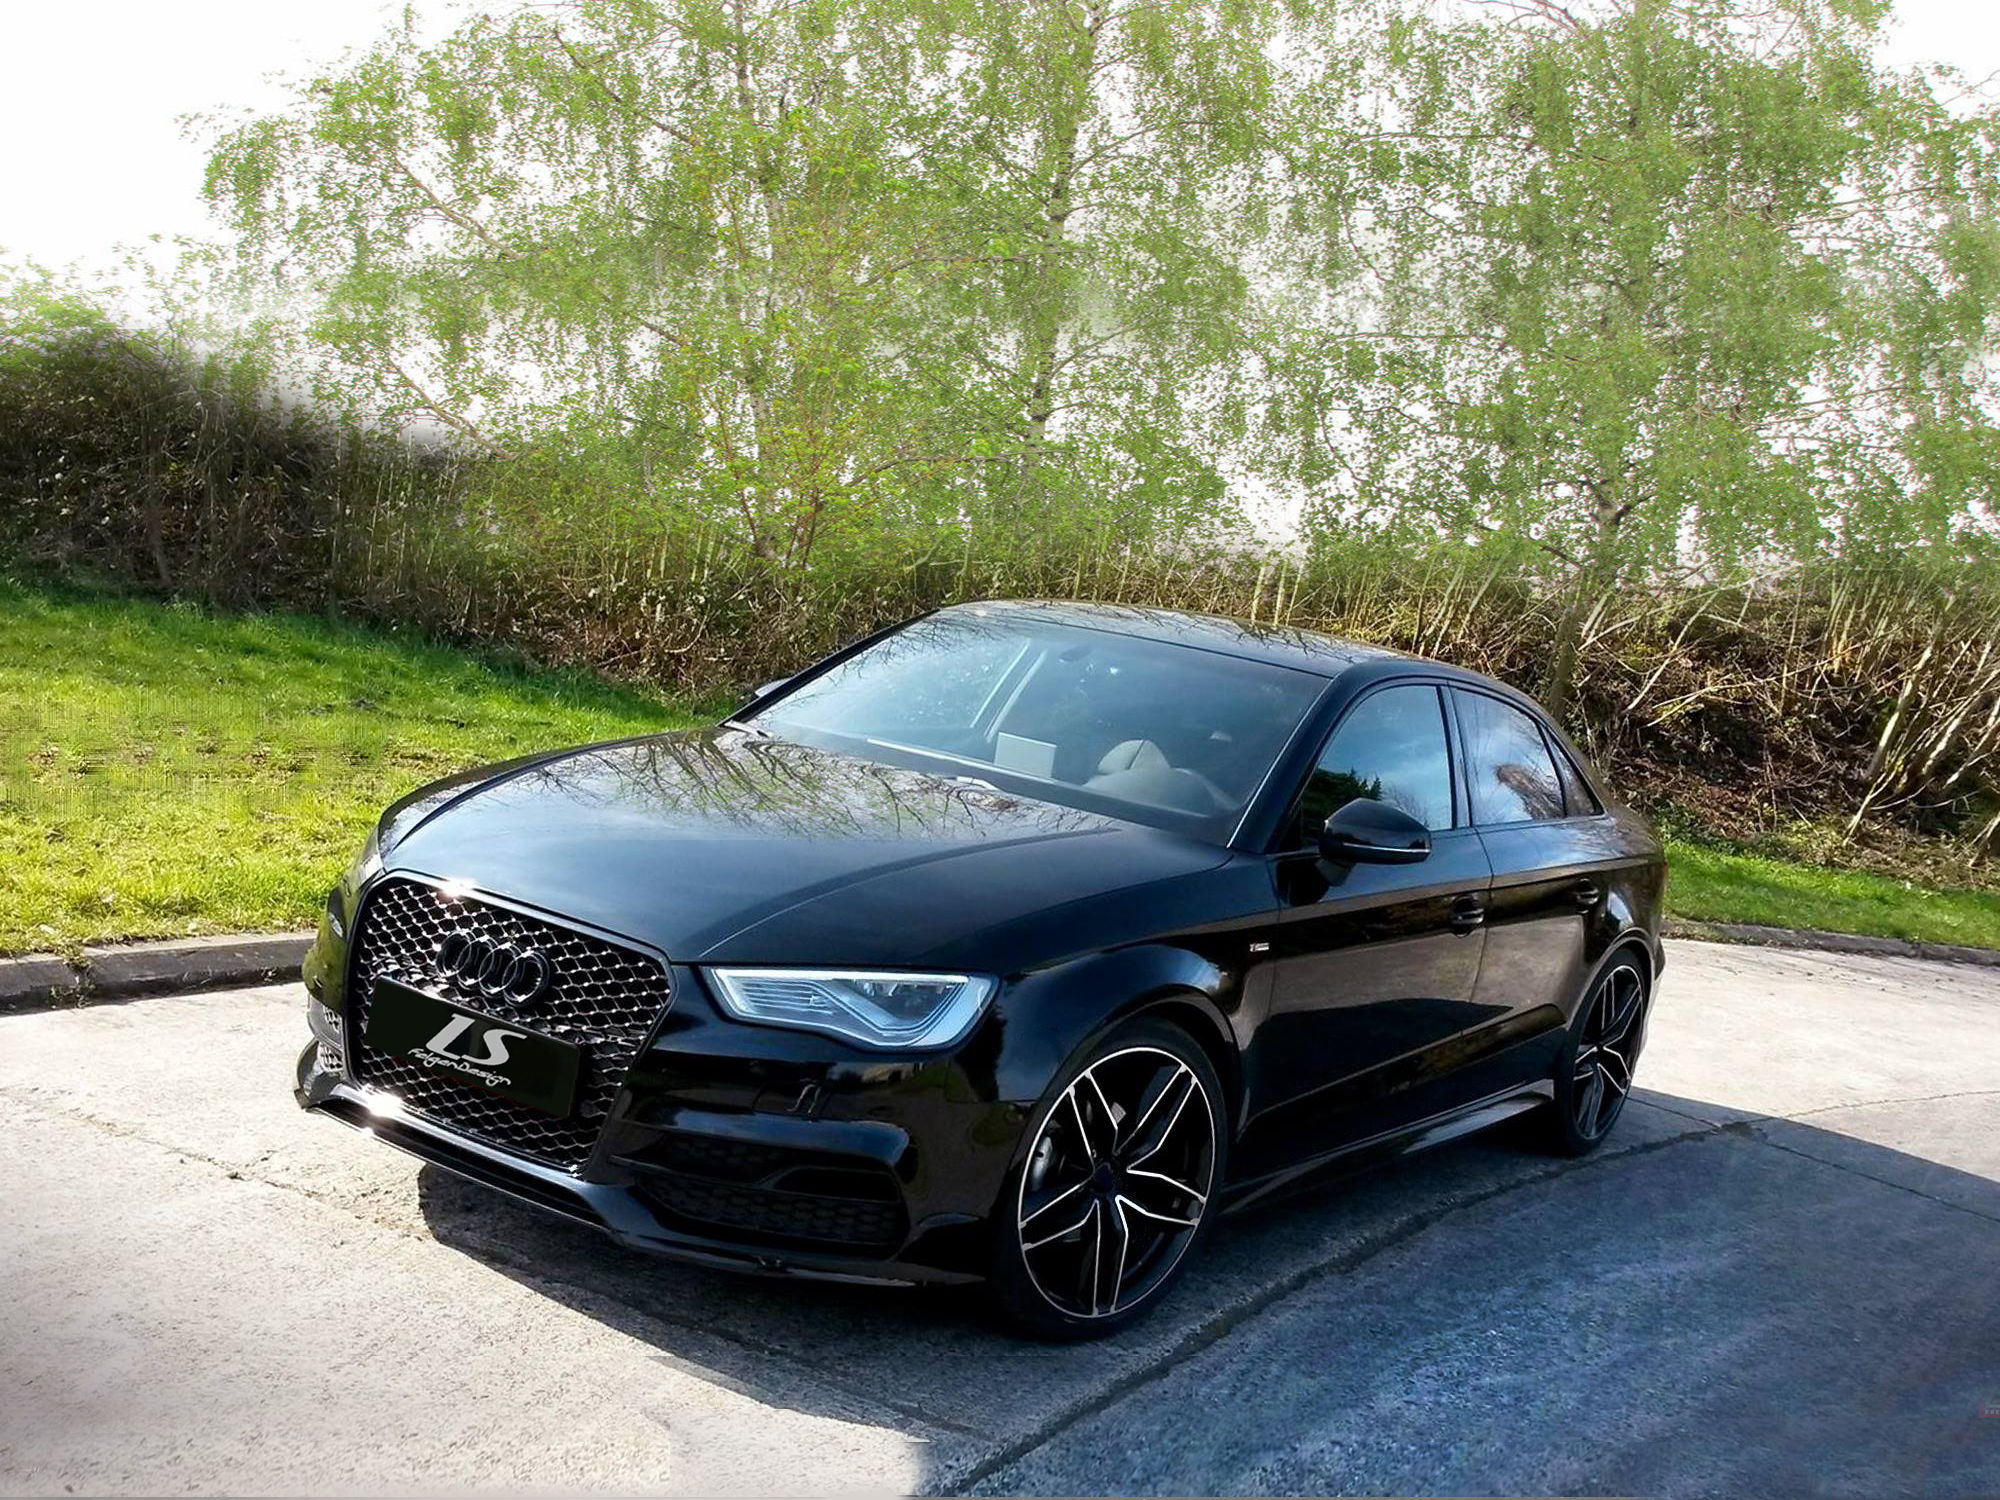 audi a3 a vendre audi a3 berline 2008 vendre j 39 annonce audi a3 s a vendre audi a3 quattro. Black Bedroom Furniture Sets. Home Design Ideas